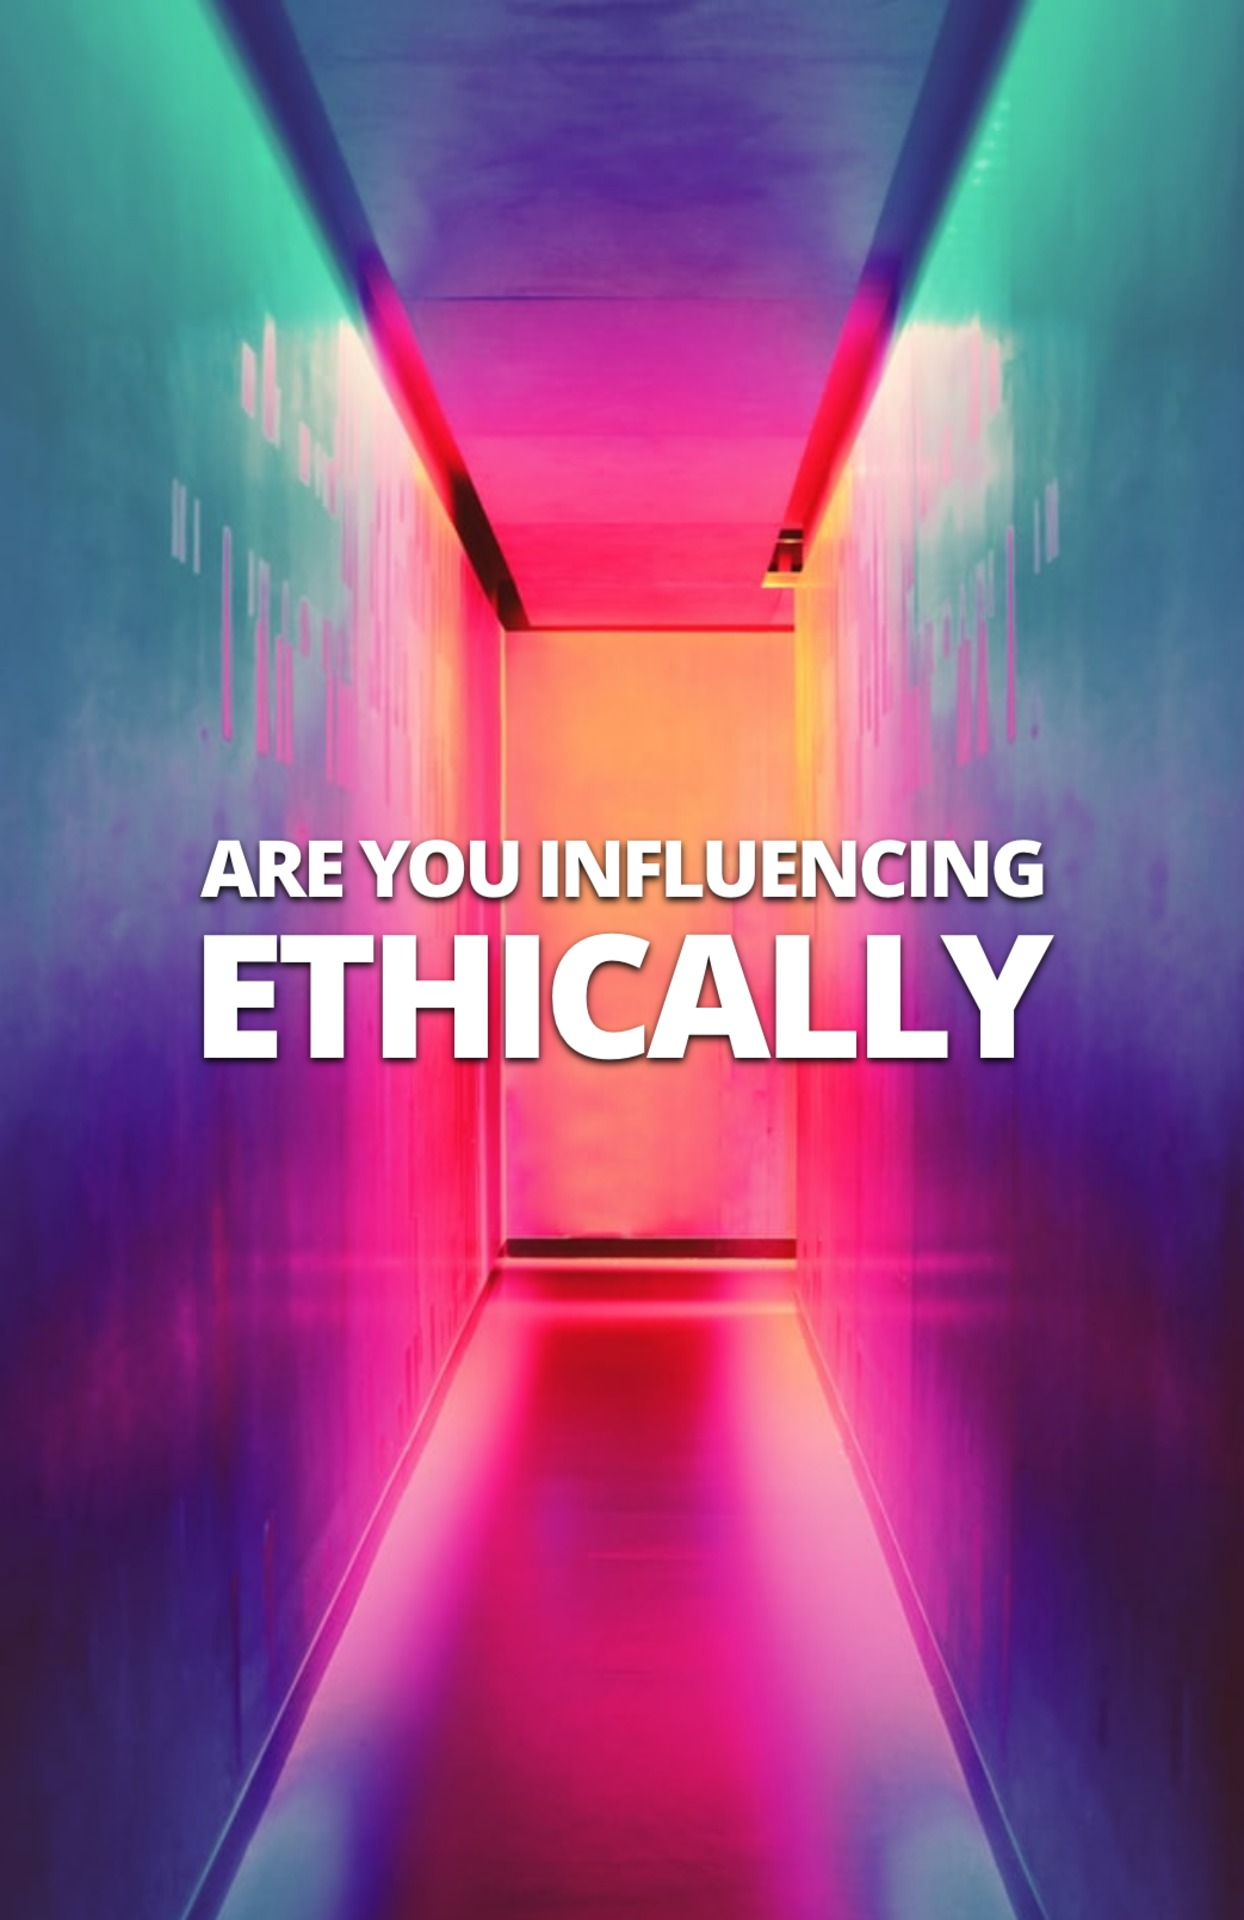 Are you influencing ethically? image